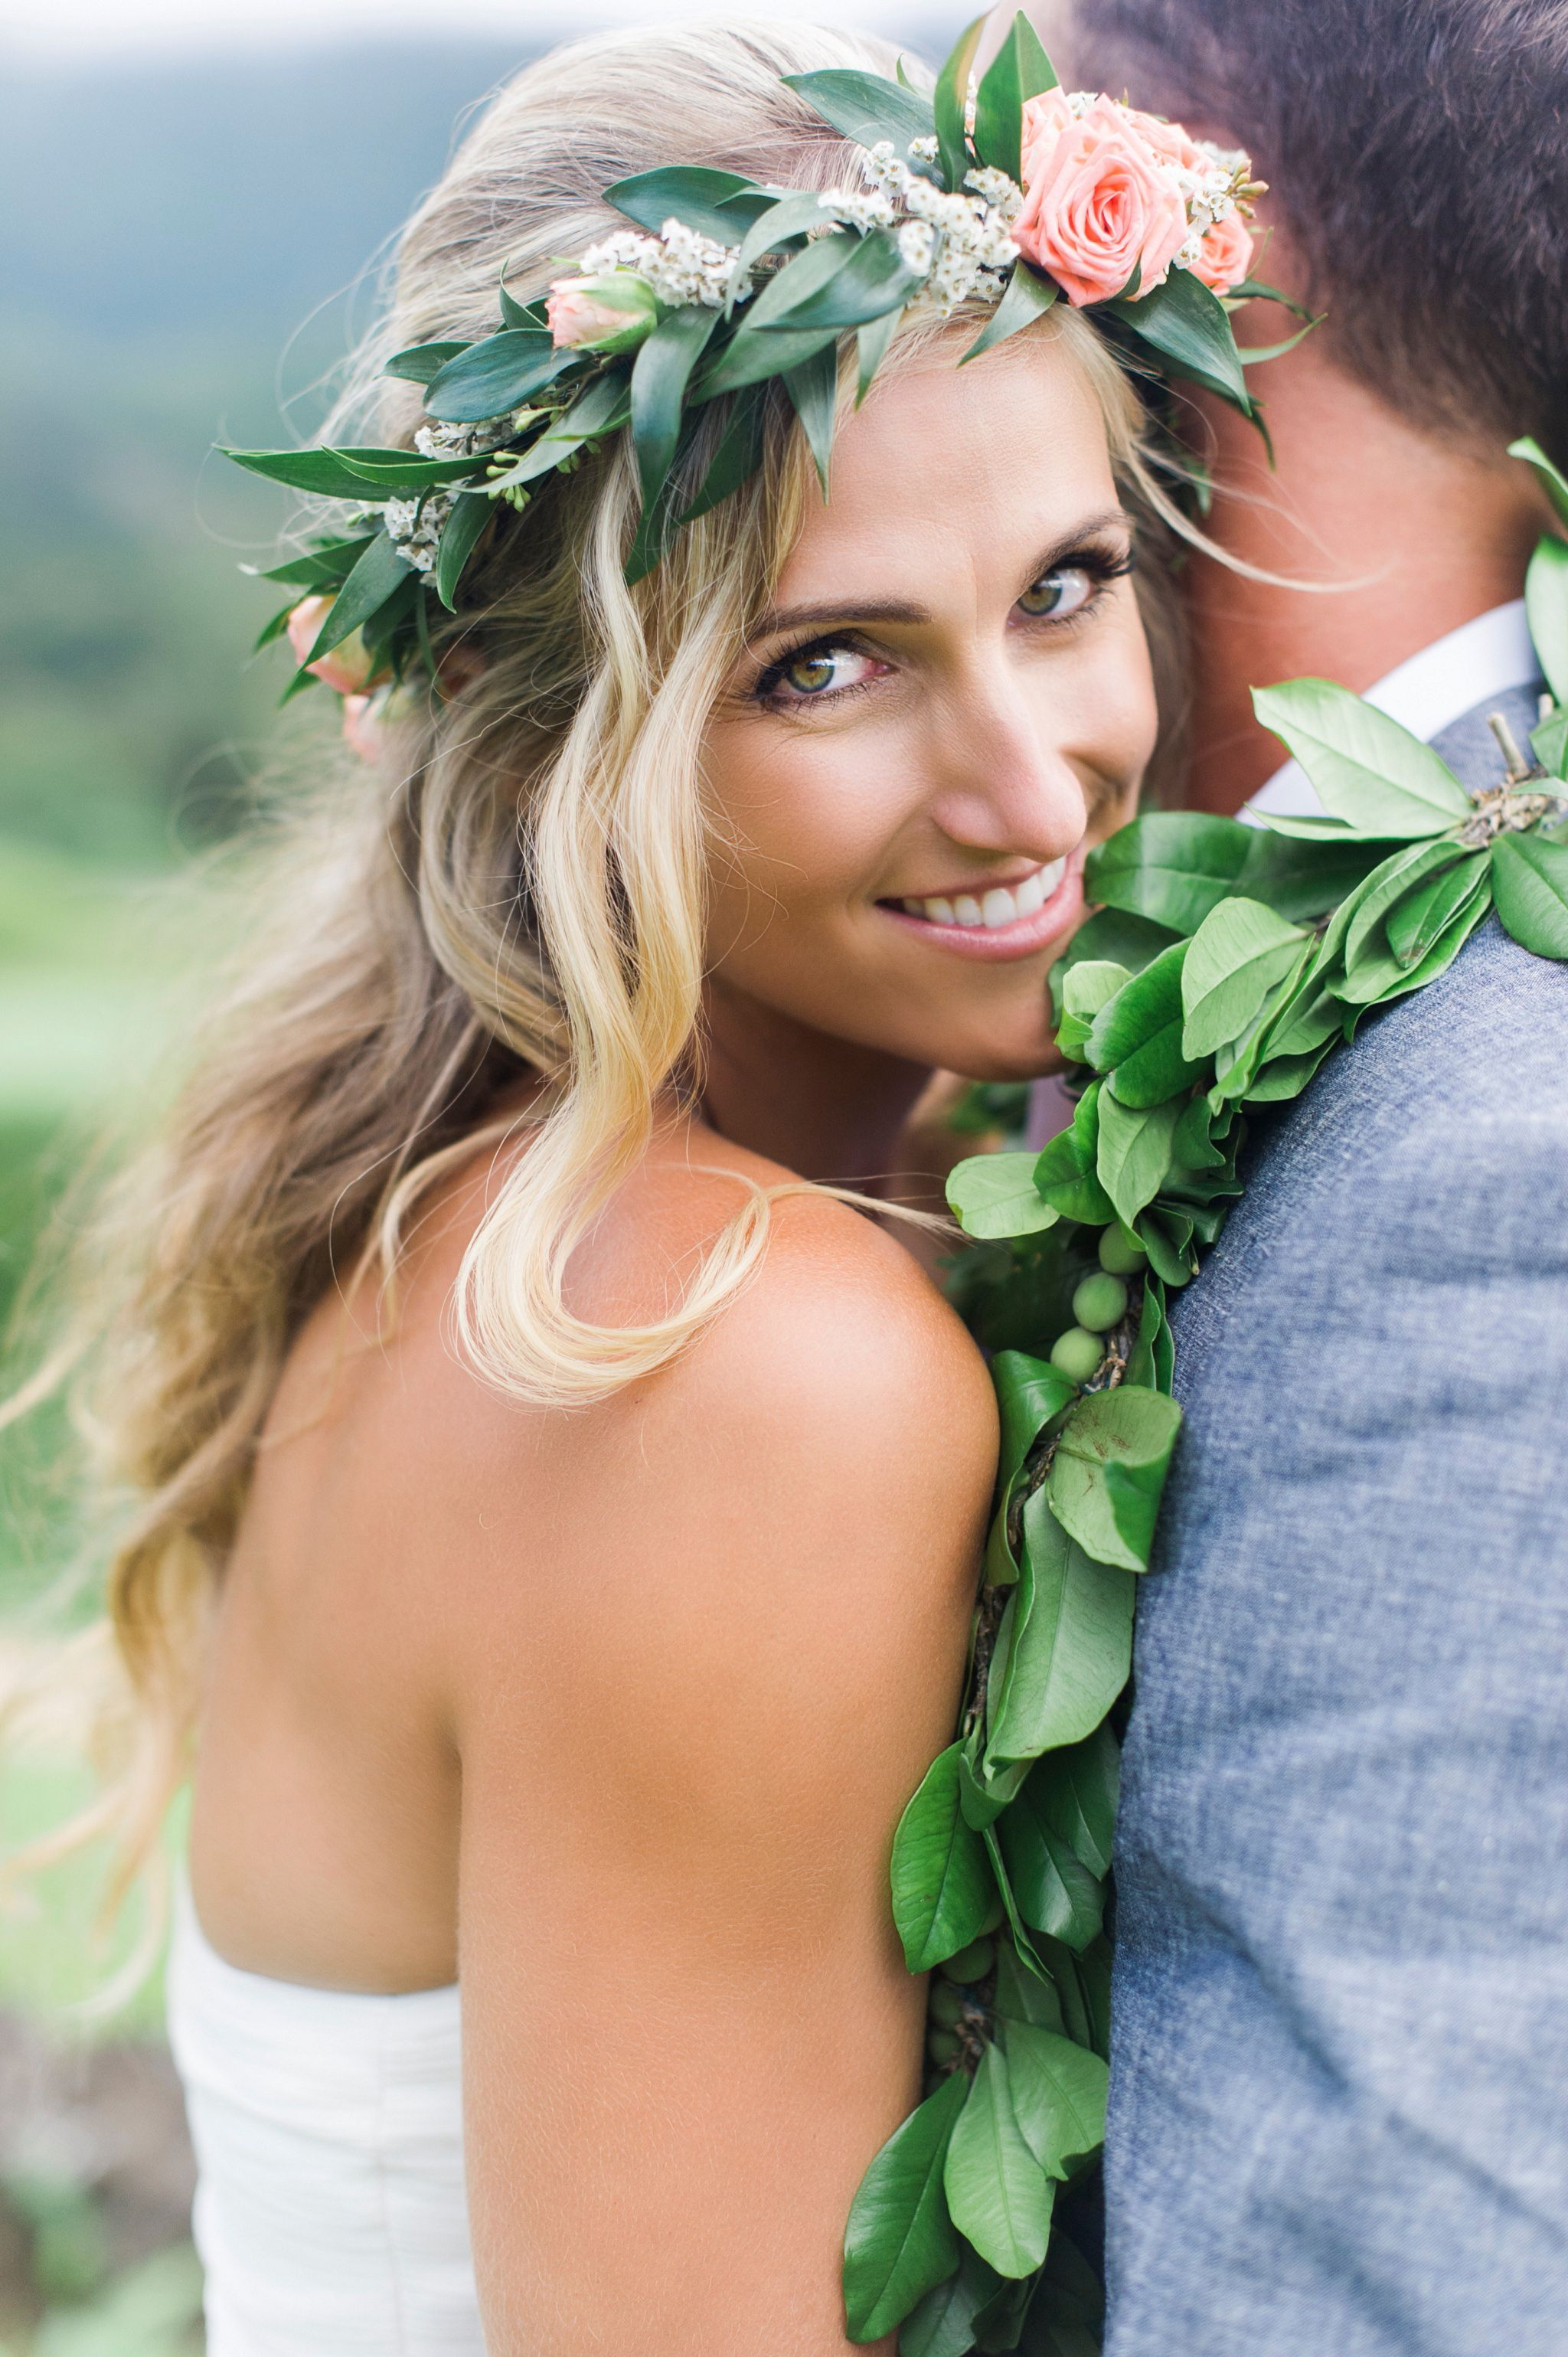 Pin by wedding chicks on wedding photography pinterest hawaiian pin by wedding chicks on wedding photography pinterest hawaiian weddings and wedding izmirmasajfo